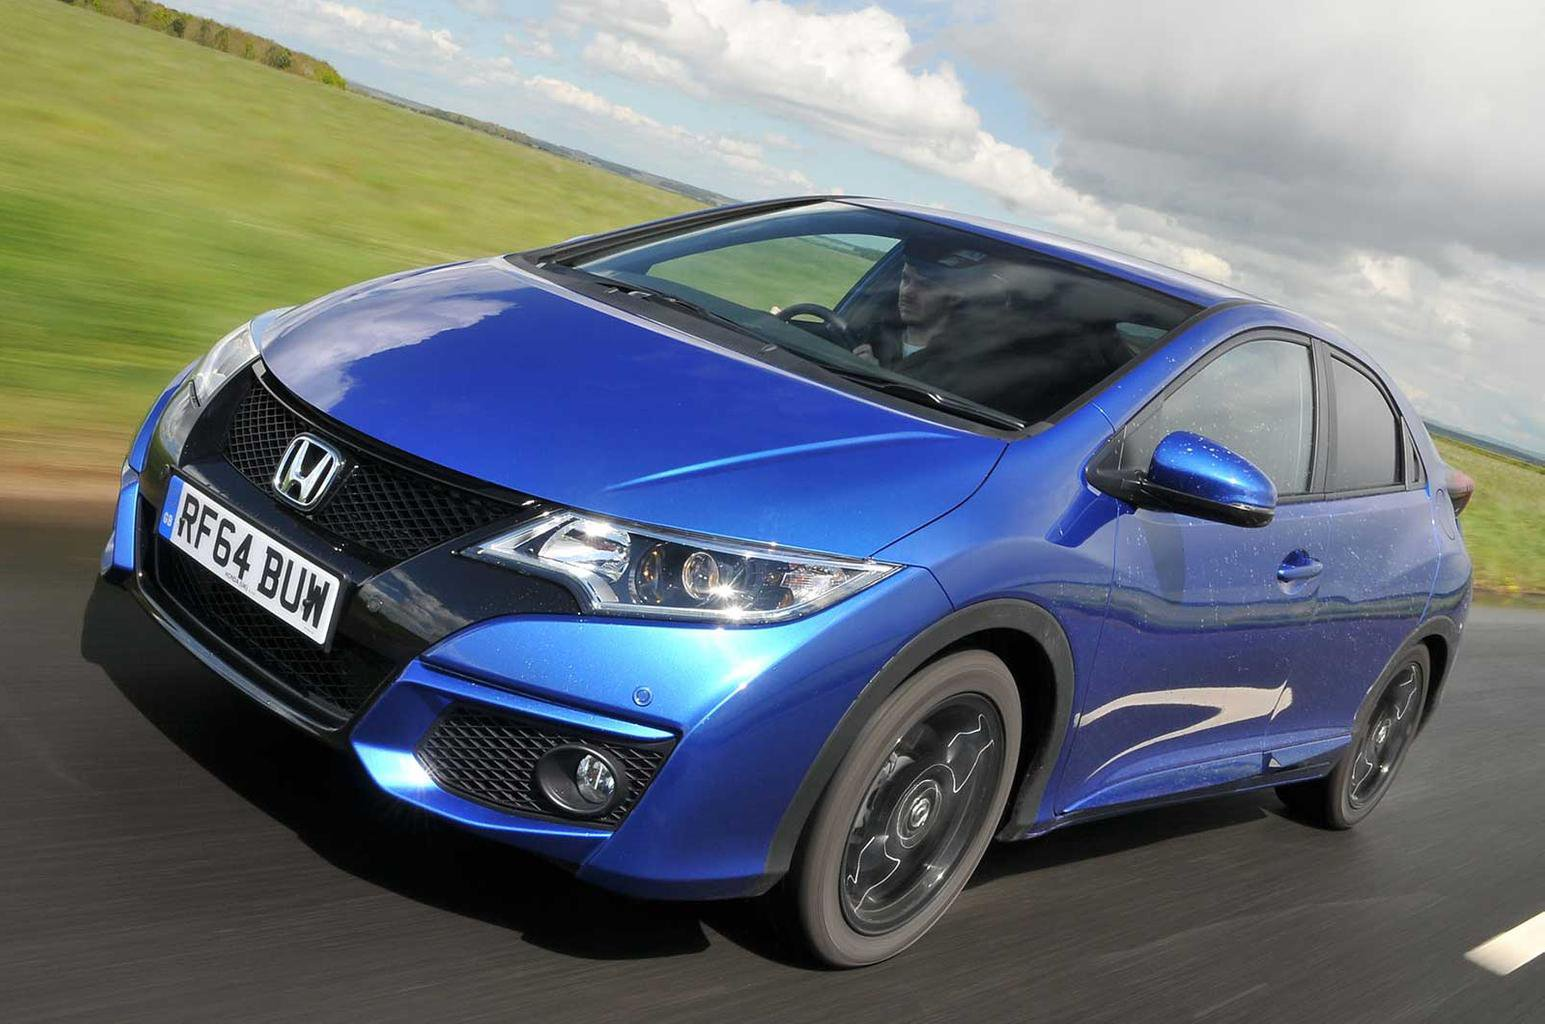 New car deal of the day: Honda Civic